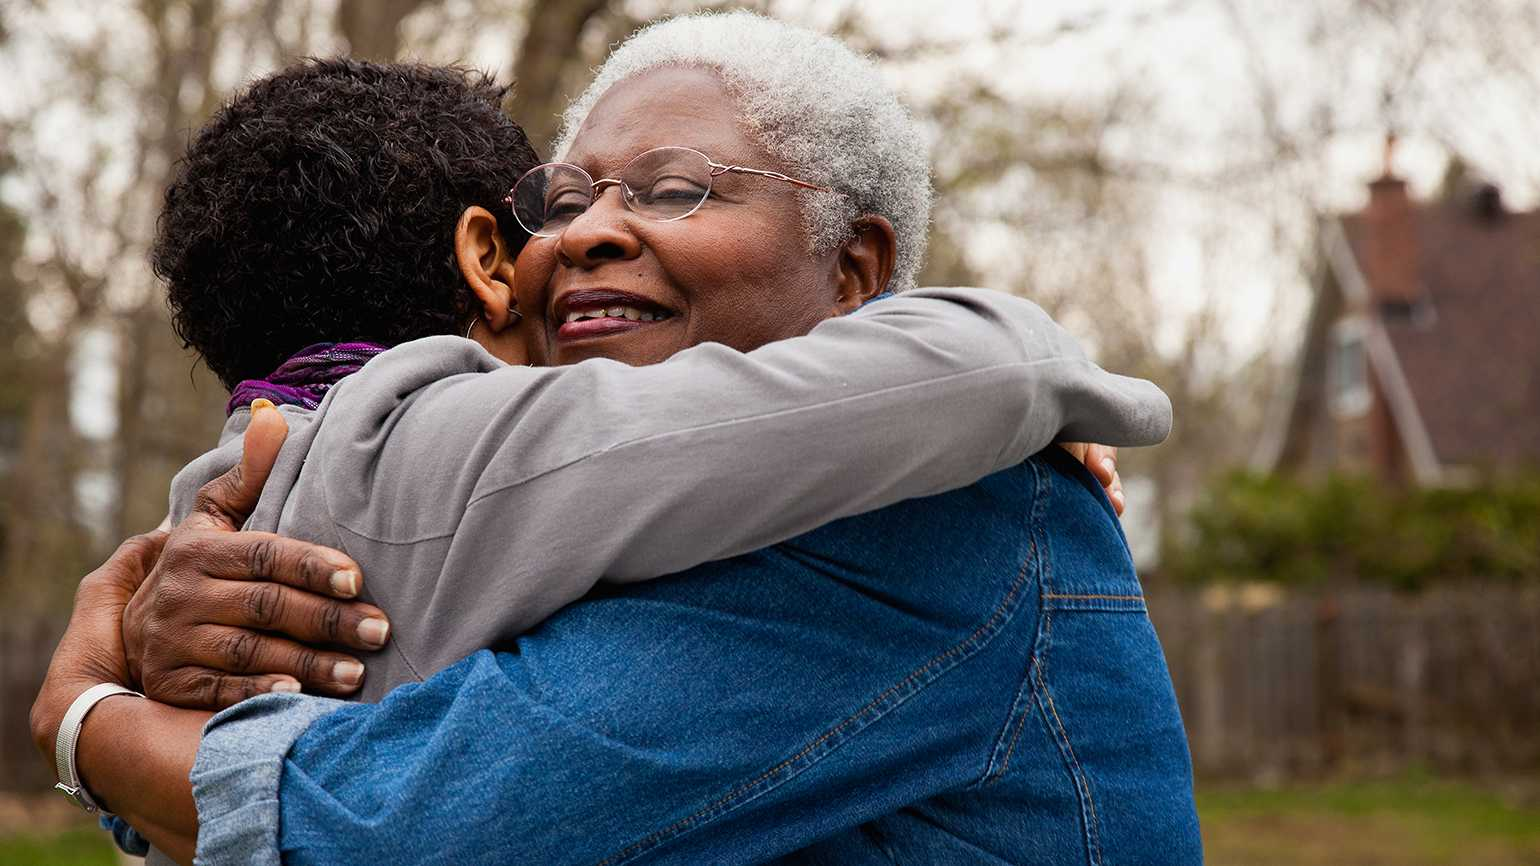 Having a good coping strategy is key for a caregiver's emotional health.